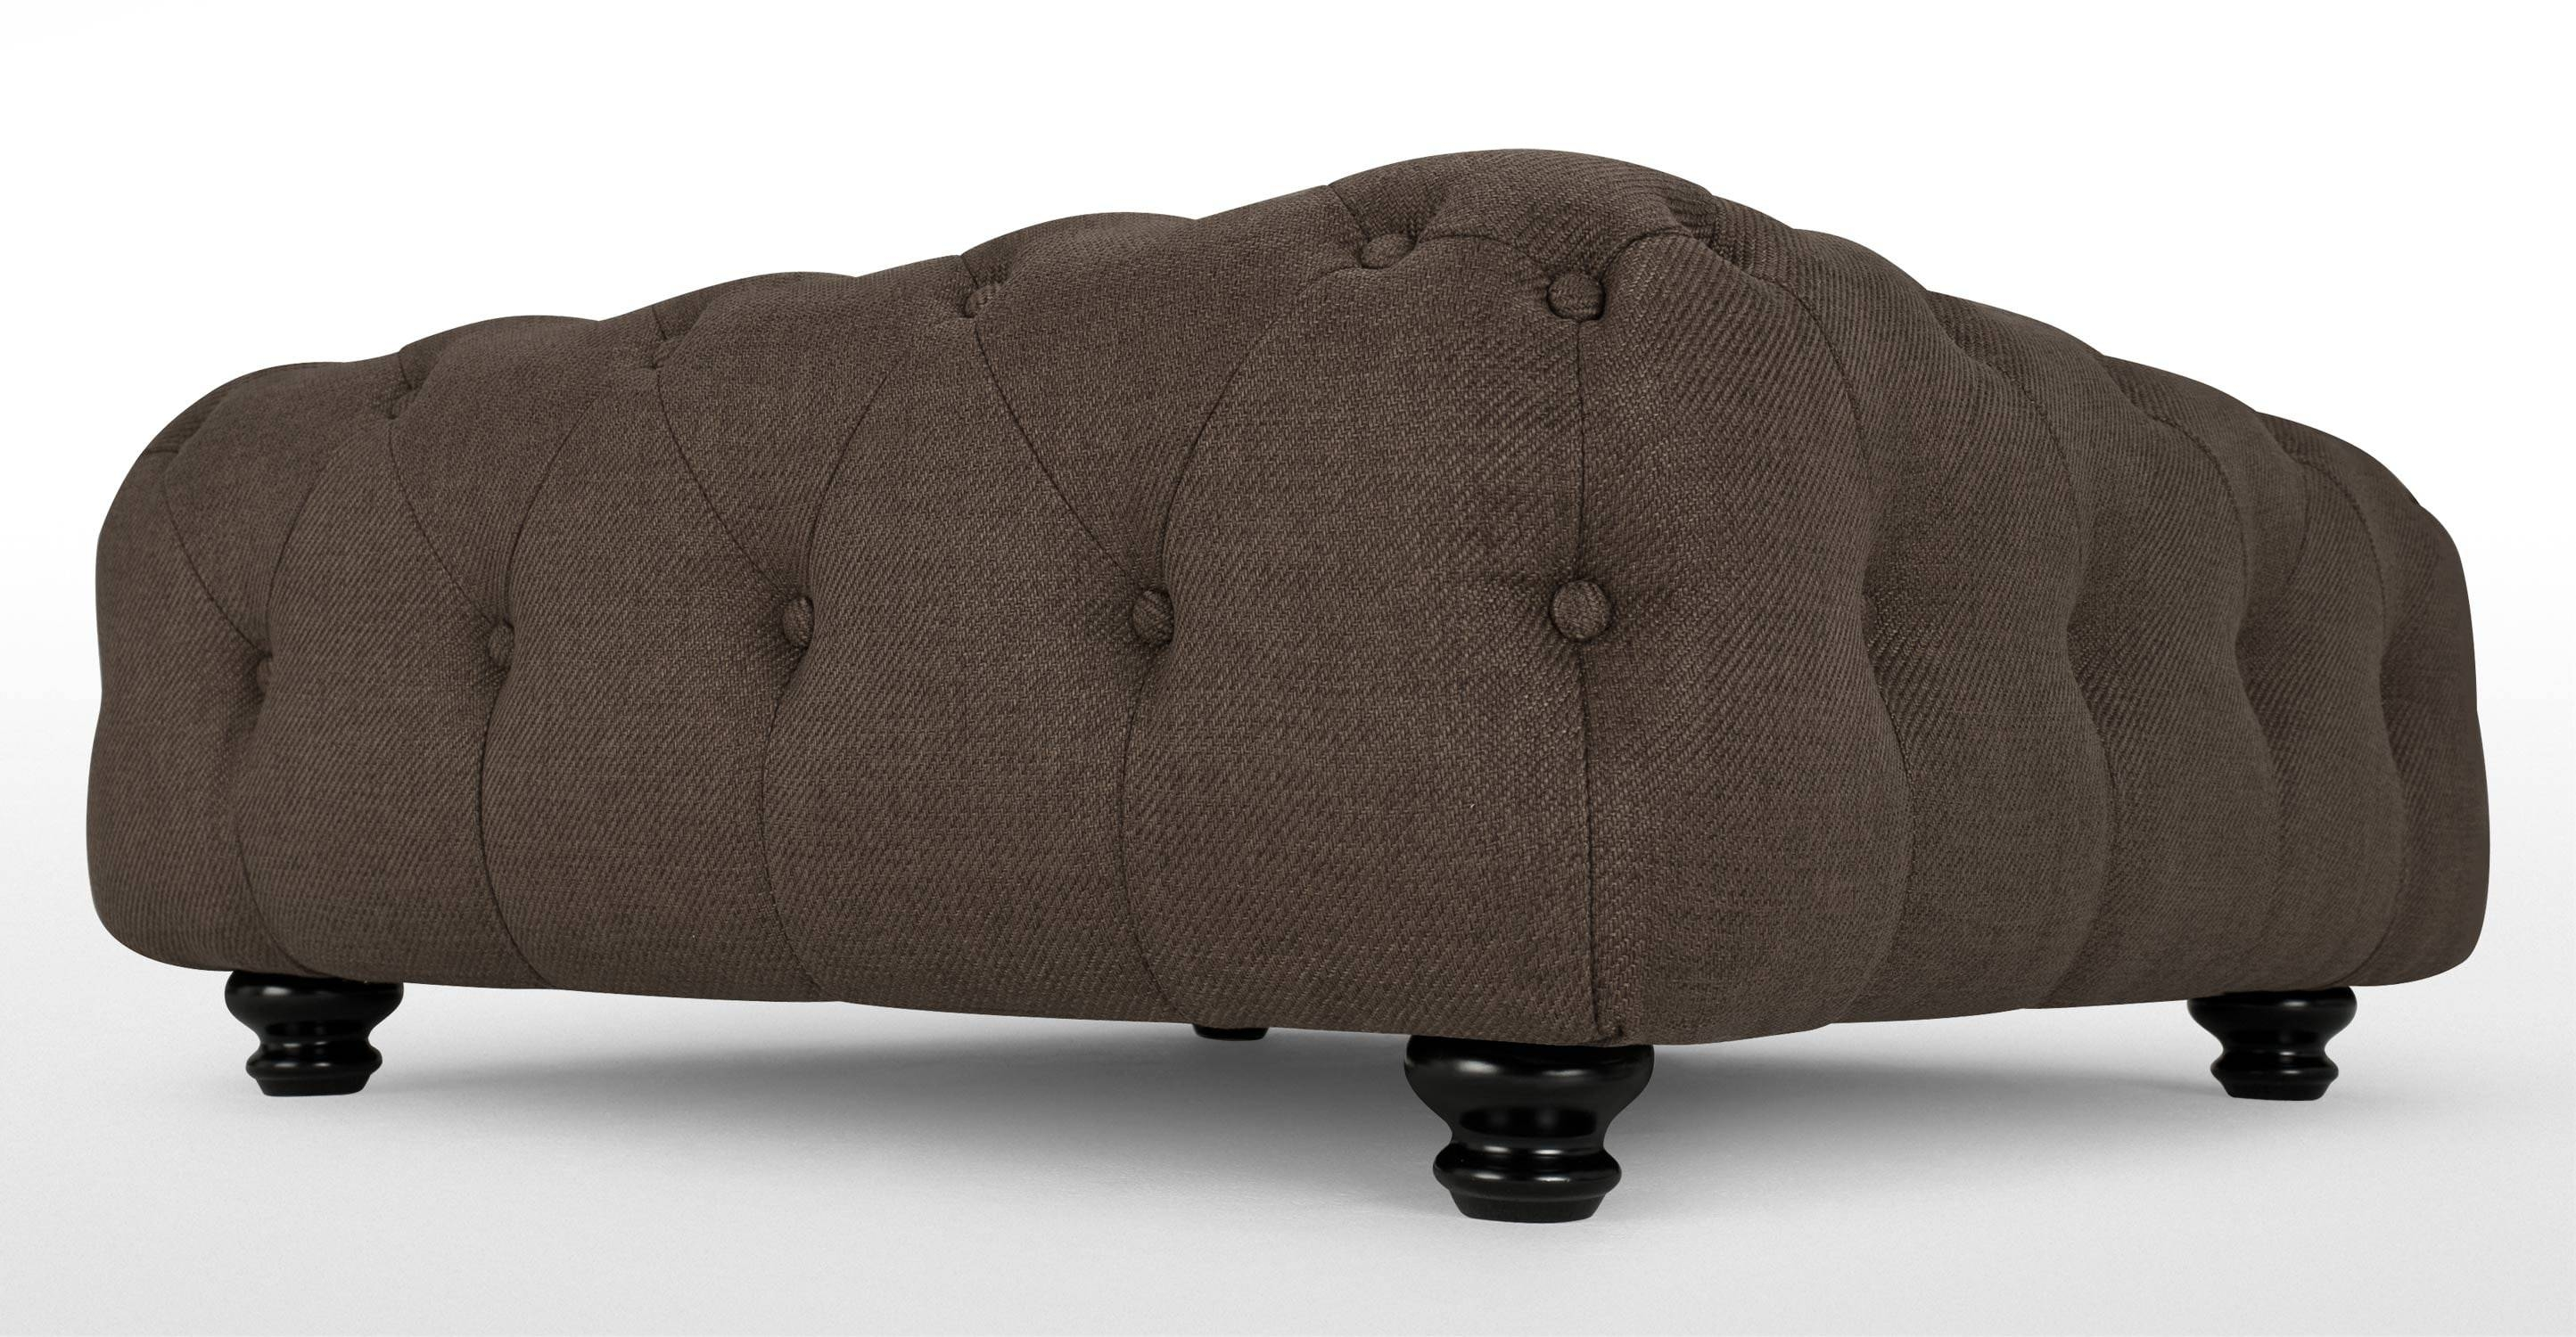 Branagh Large Footstool In Nutty Brown | Made intended for Large Footstools (Image 11 of 30)